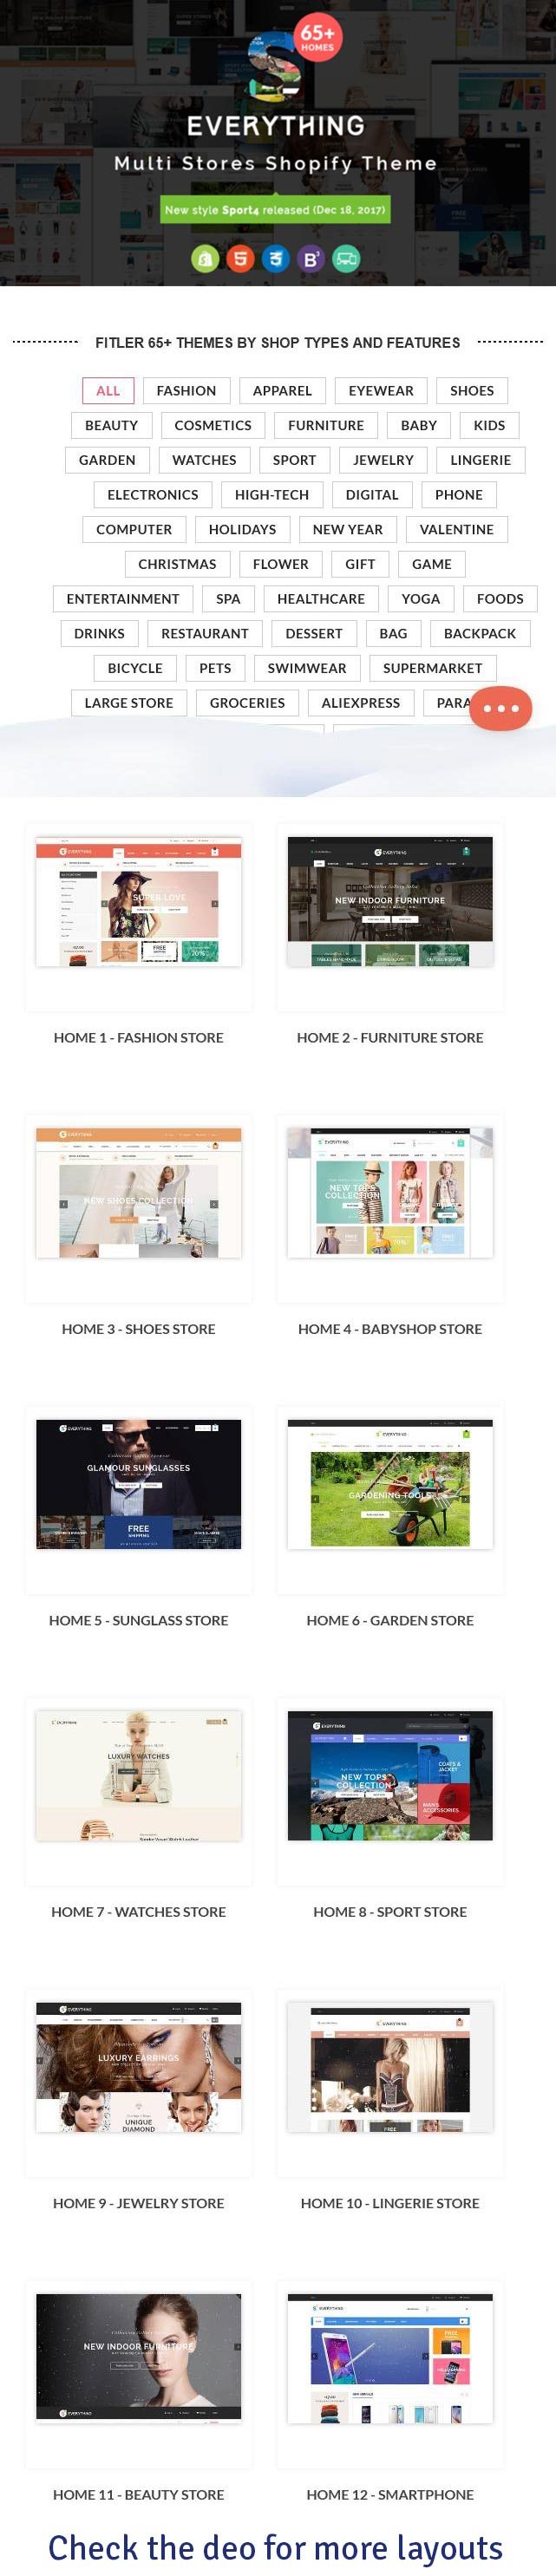 Everything - Multipurpose Premium Responsive Shopify Themes - Fashion, Electronics, Cosmetics